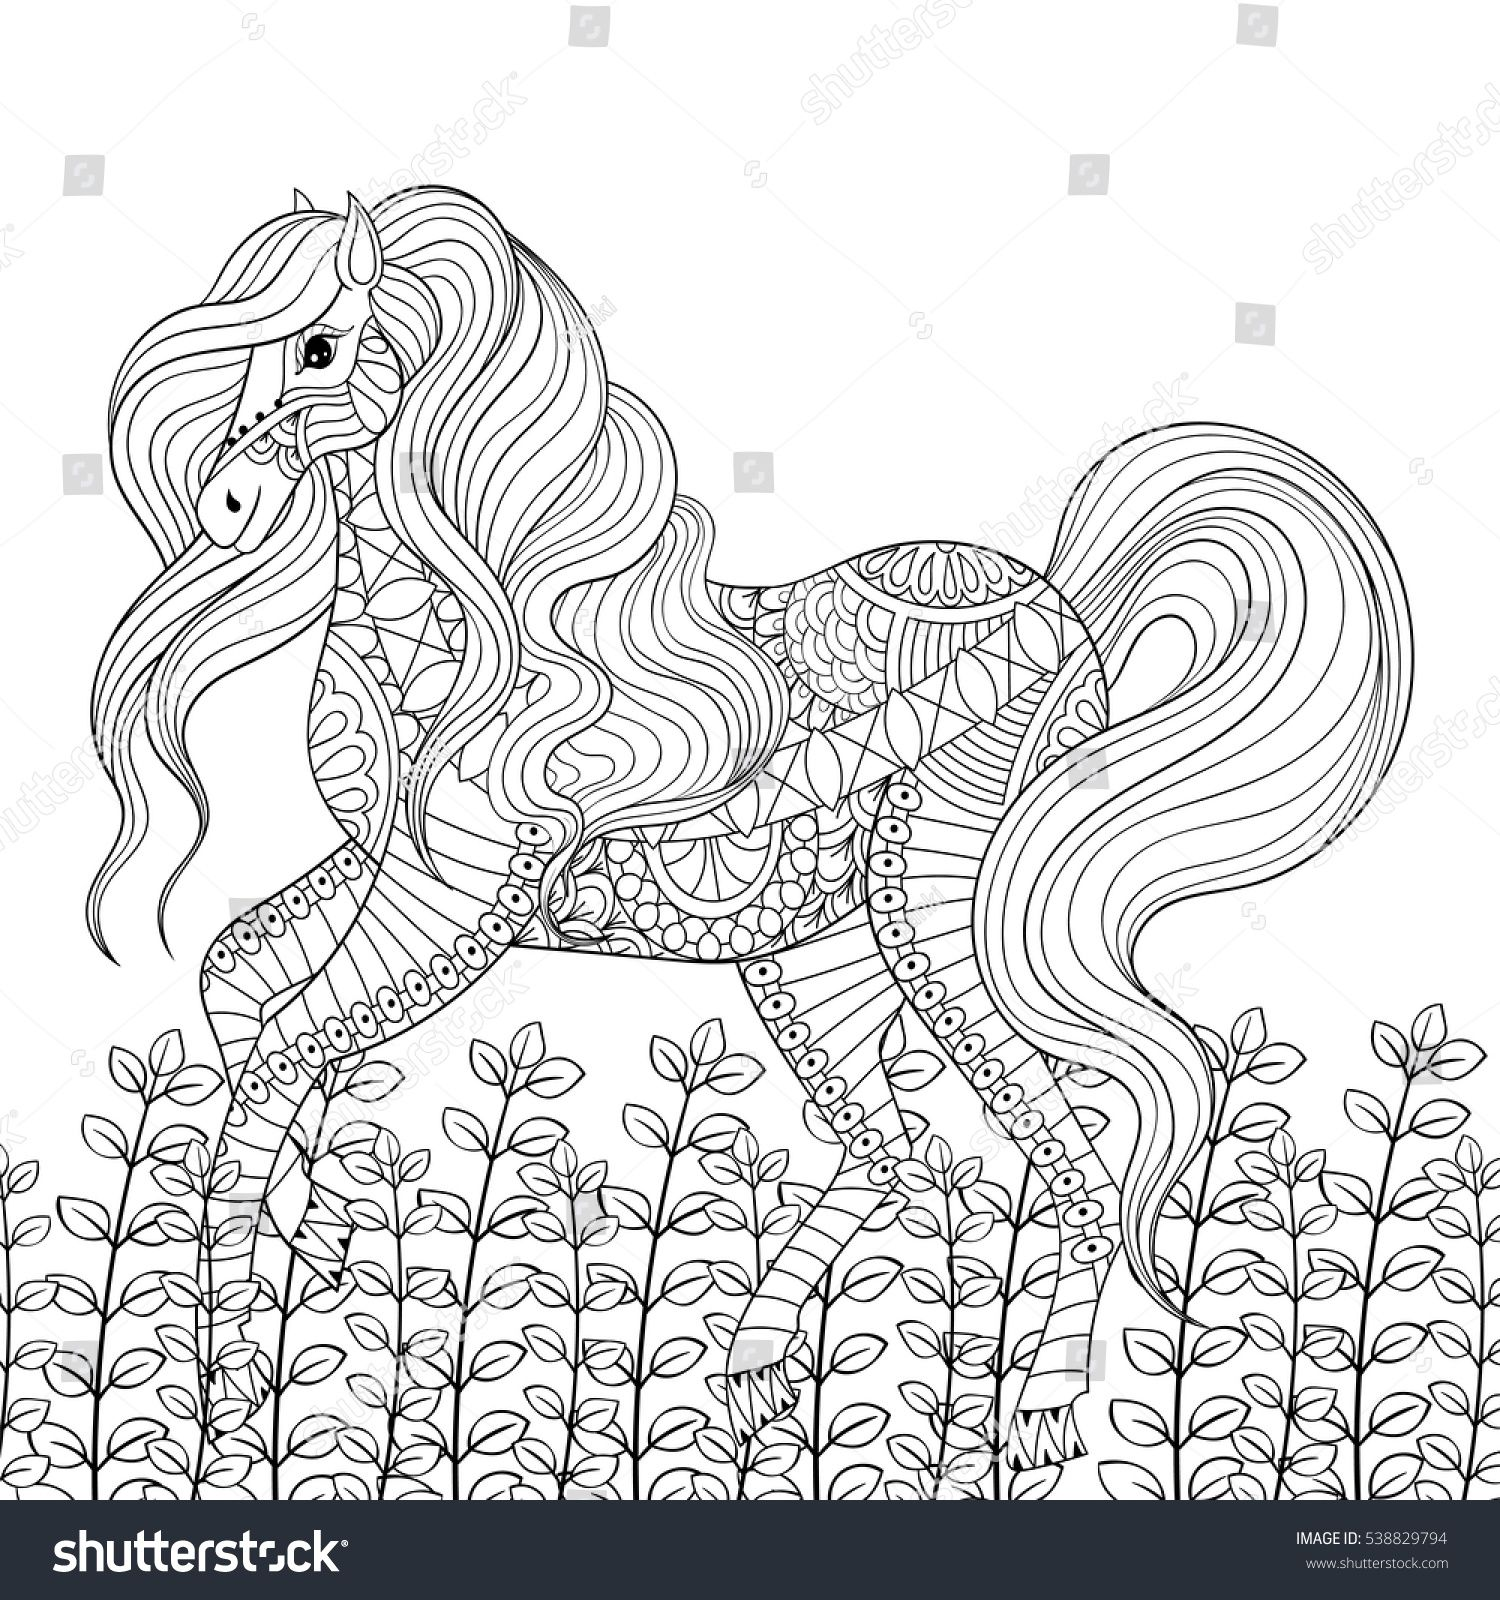 Racing horse adult anti stress coloring page. Hand drawn zentangle mustang for colouring, book cover, art therapy, greeting card, t-shirt print, patterned ethnic decoration elements